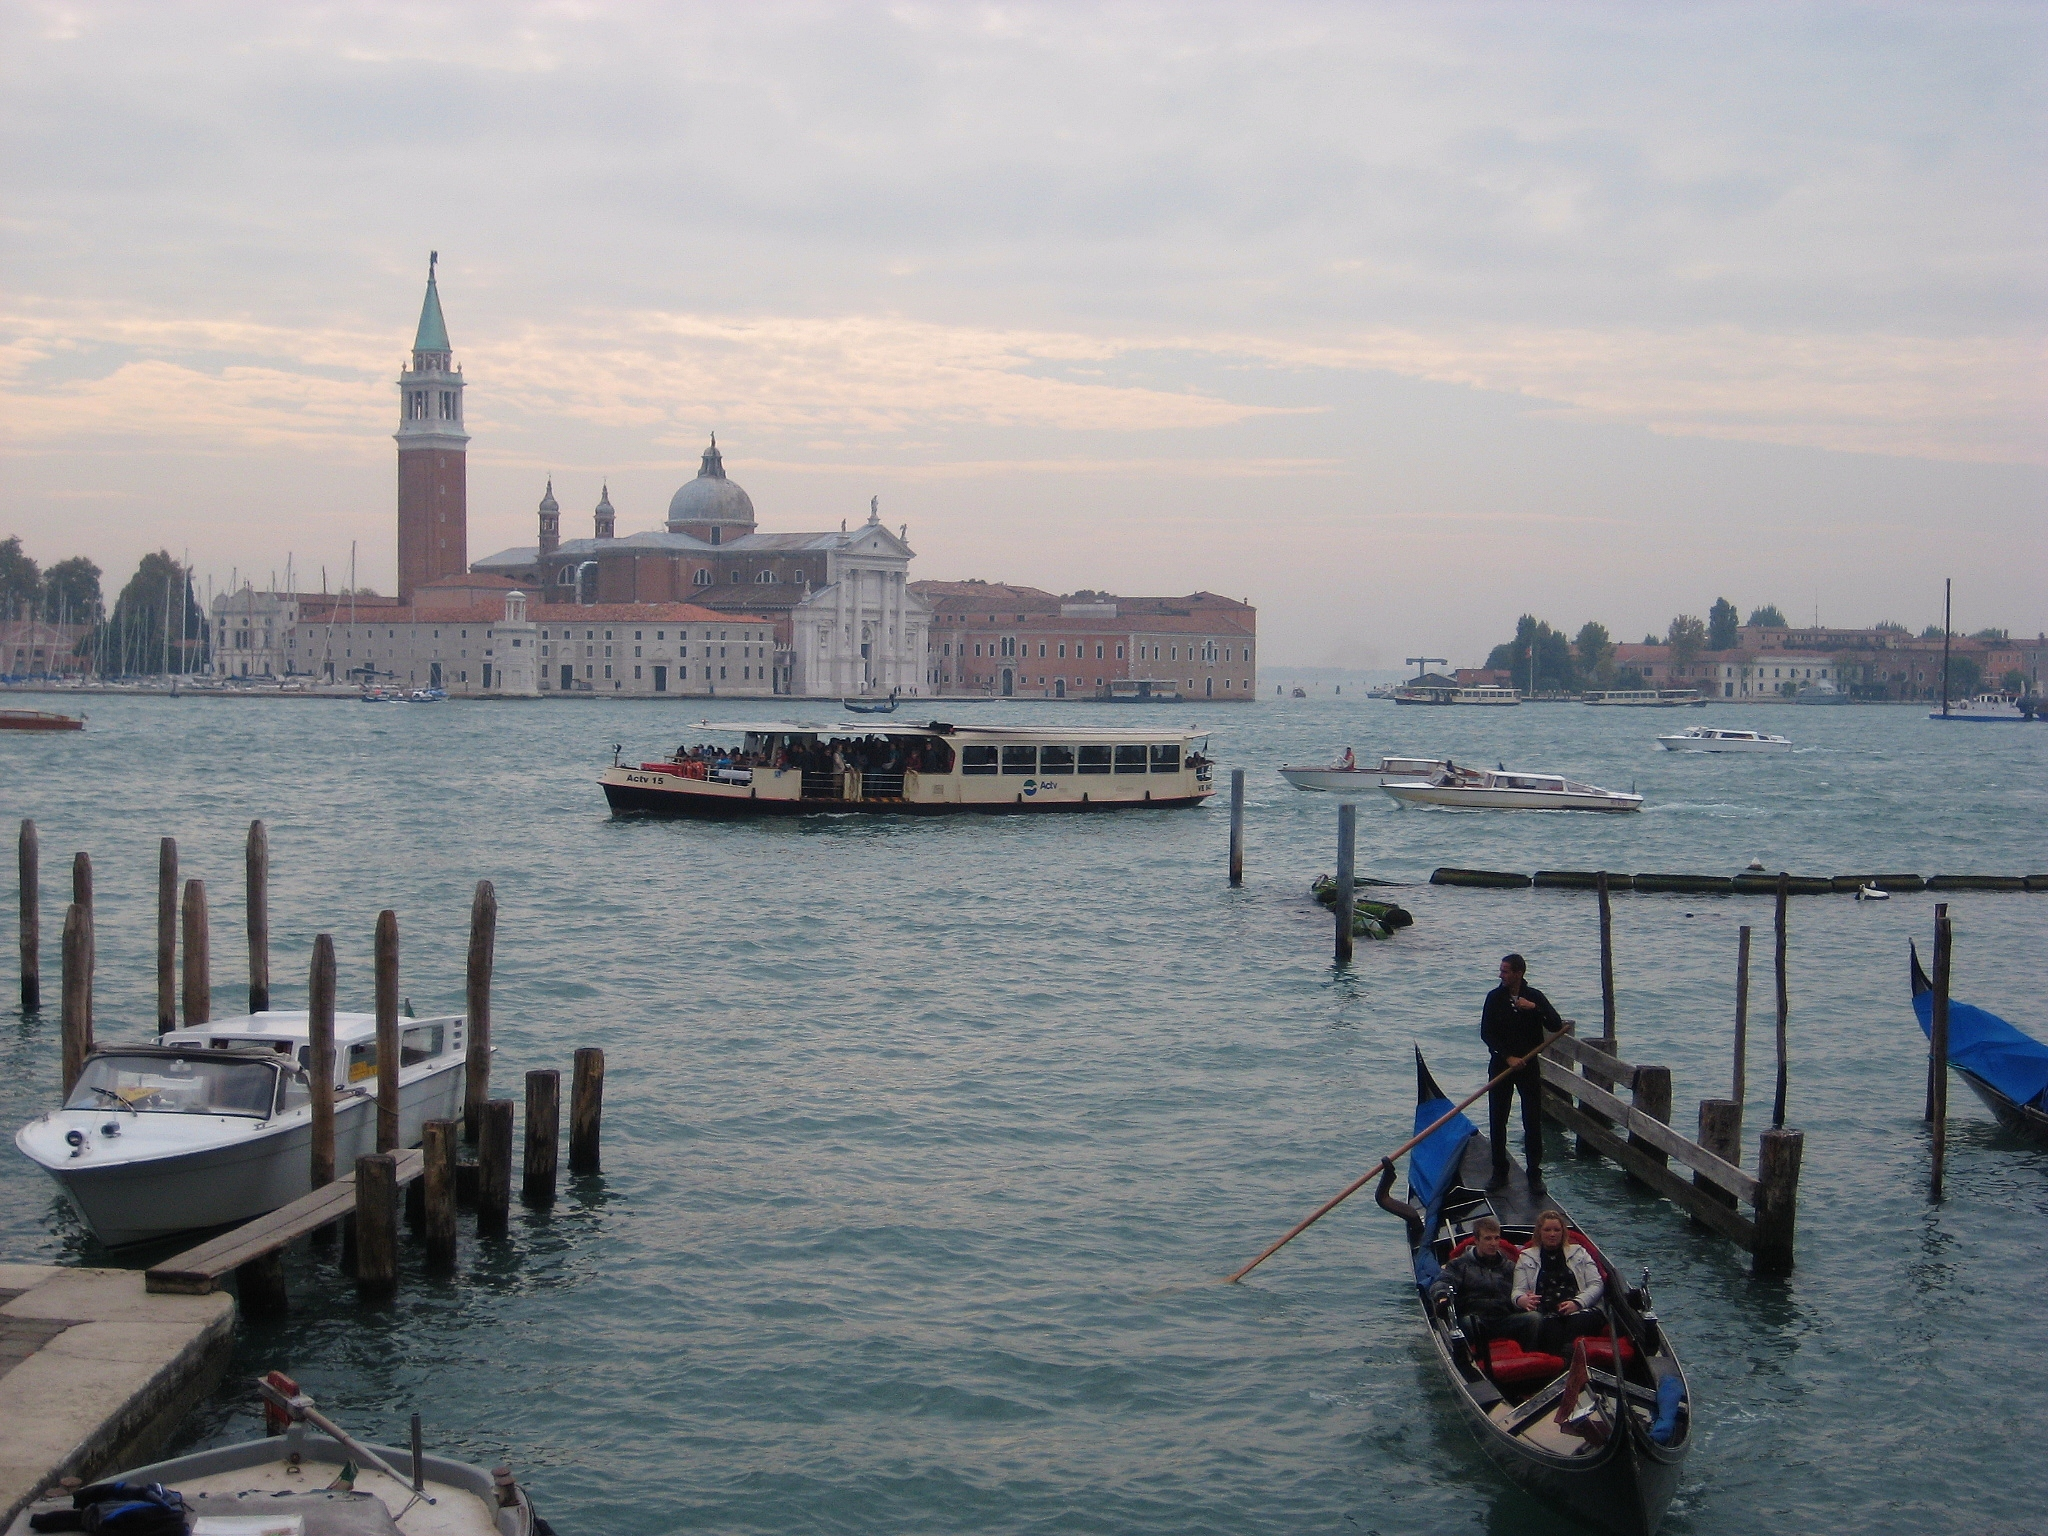 Venice - one of Europe's most romantic cities